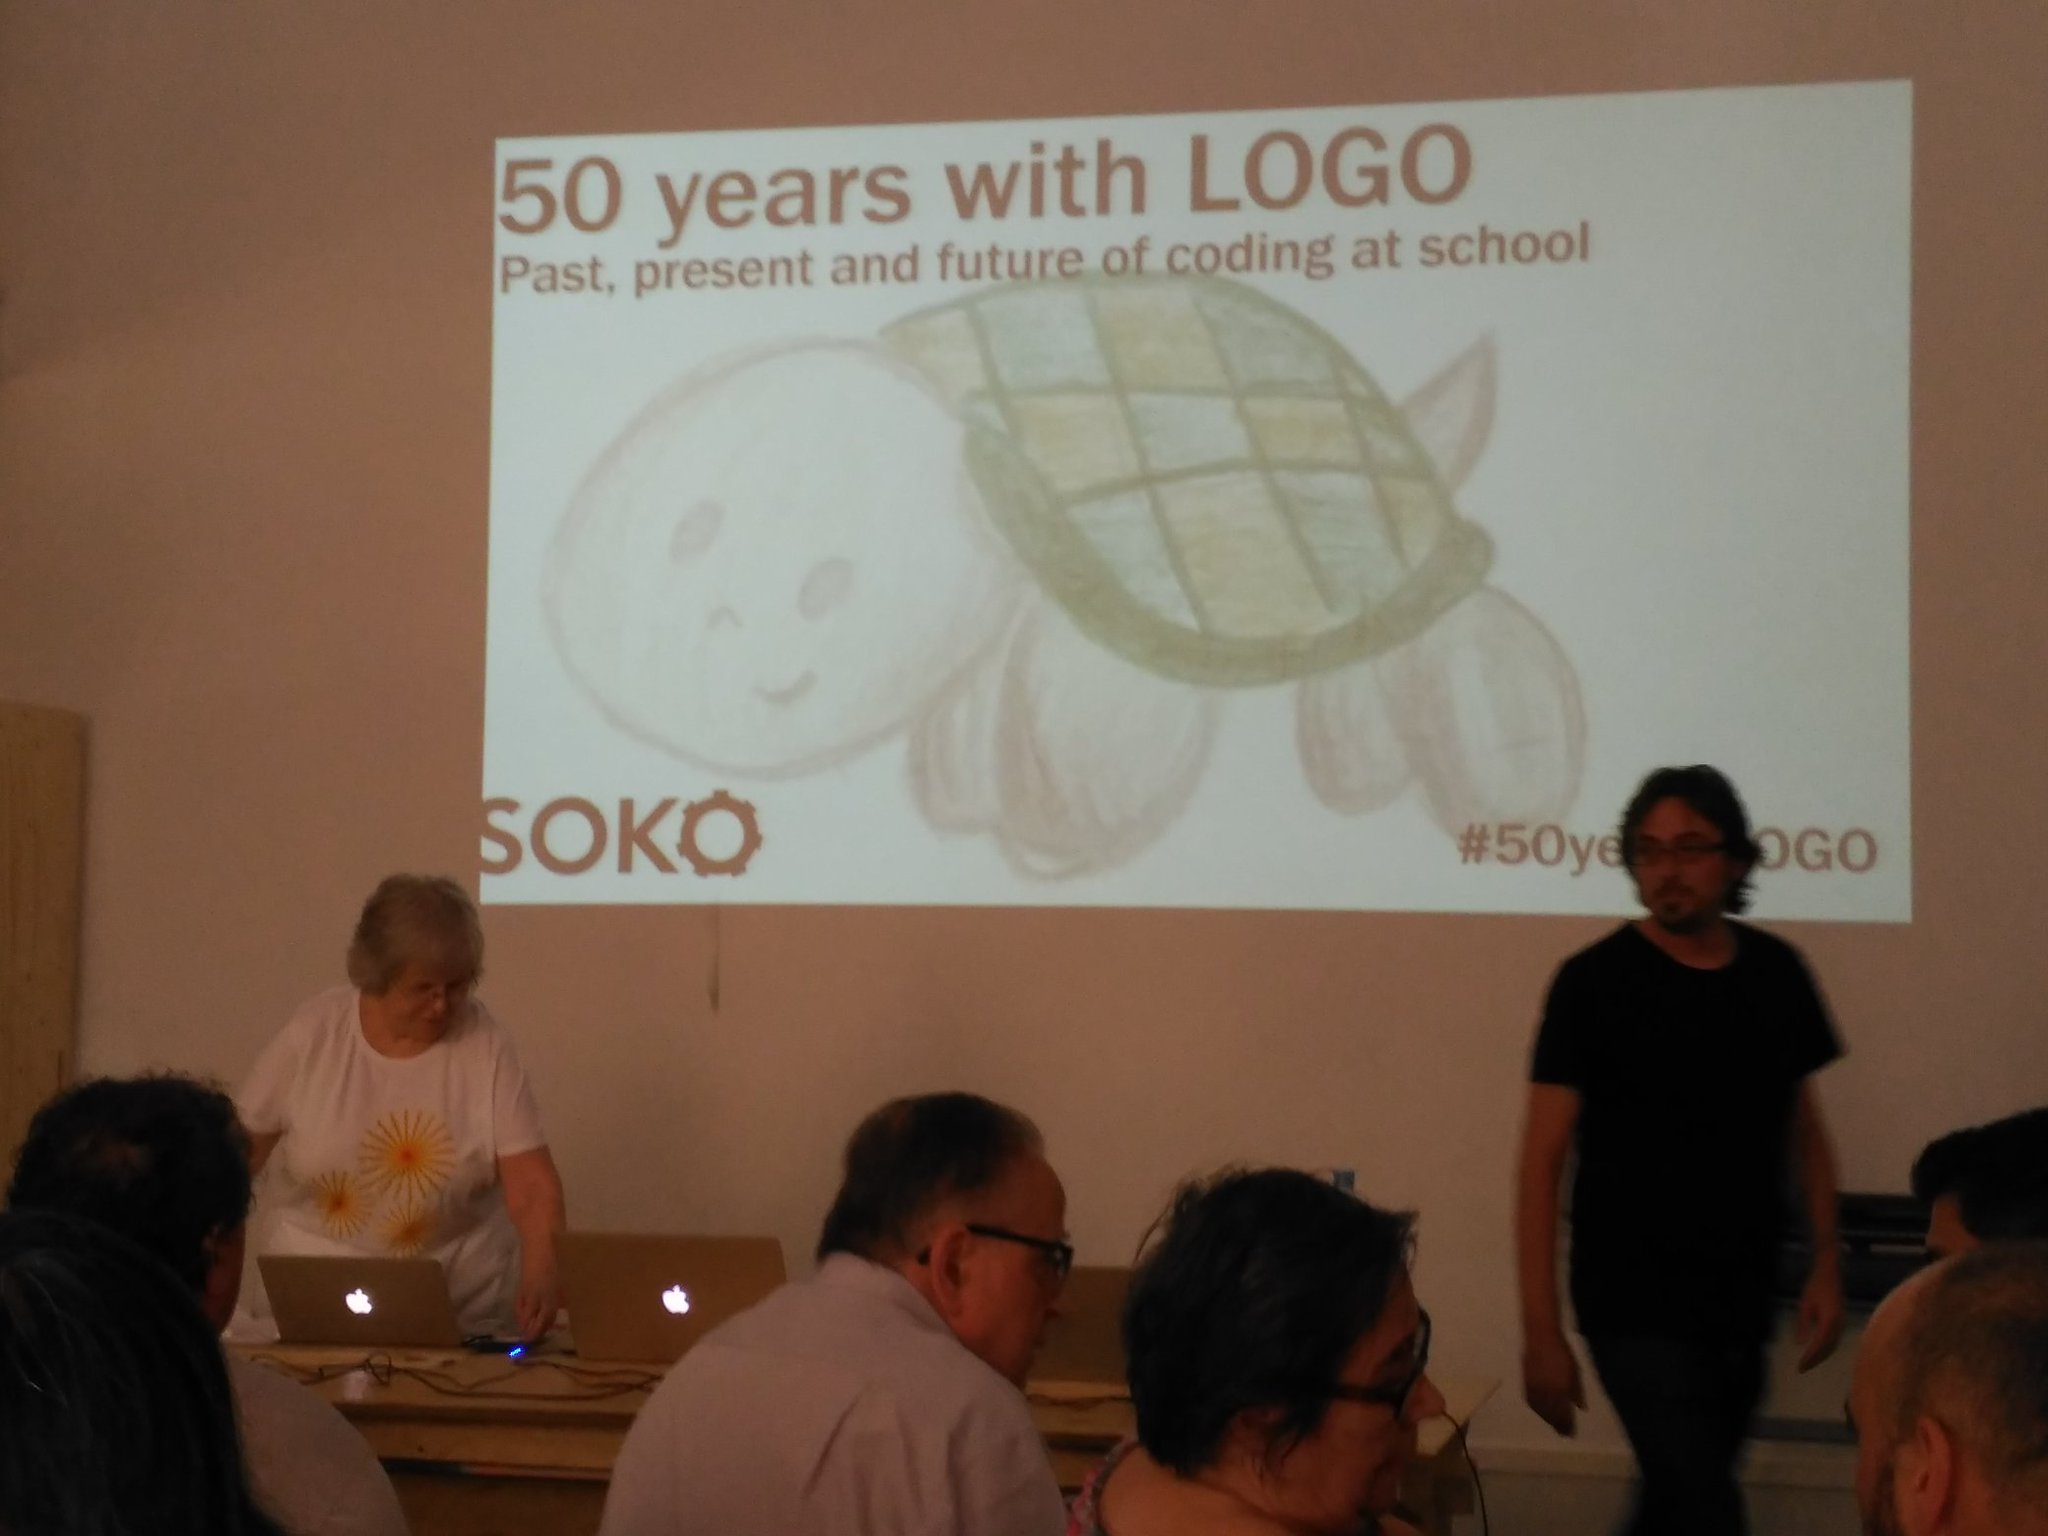 Comença #50yearsLOGO a @sokotech !!! https://t.co/uzF2GUtzCI